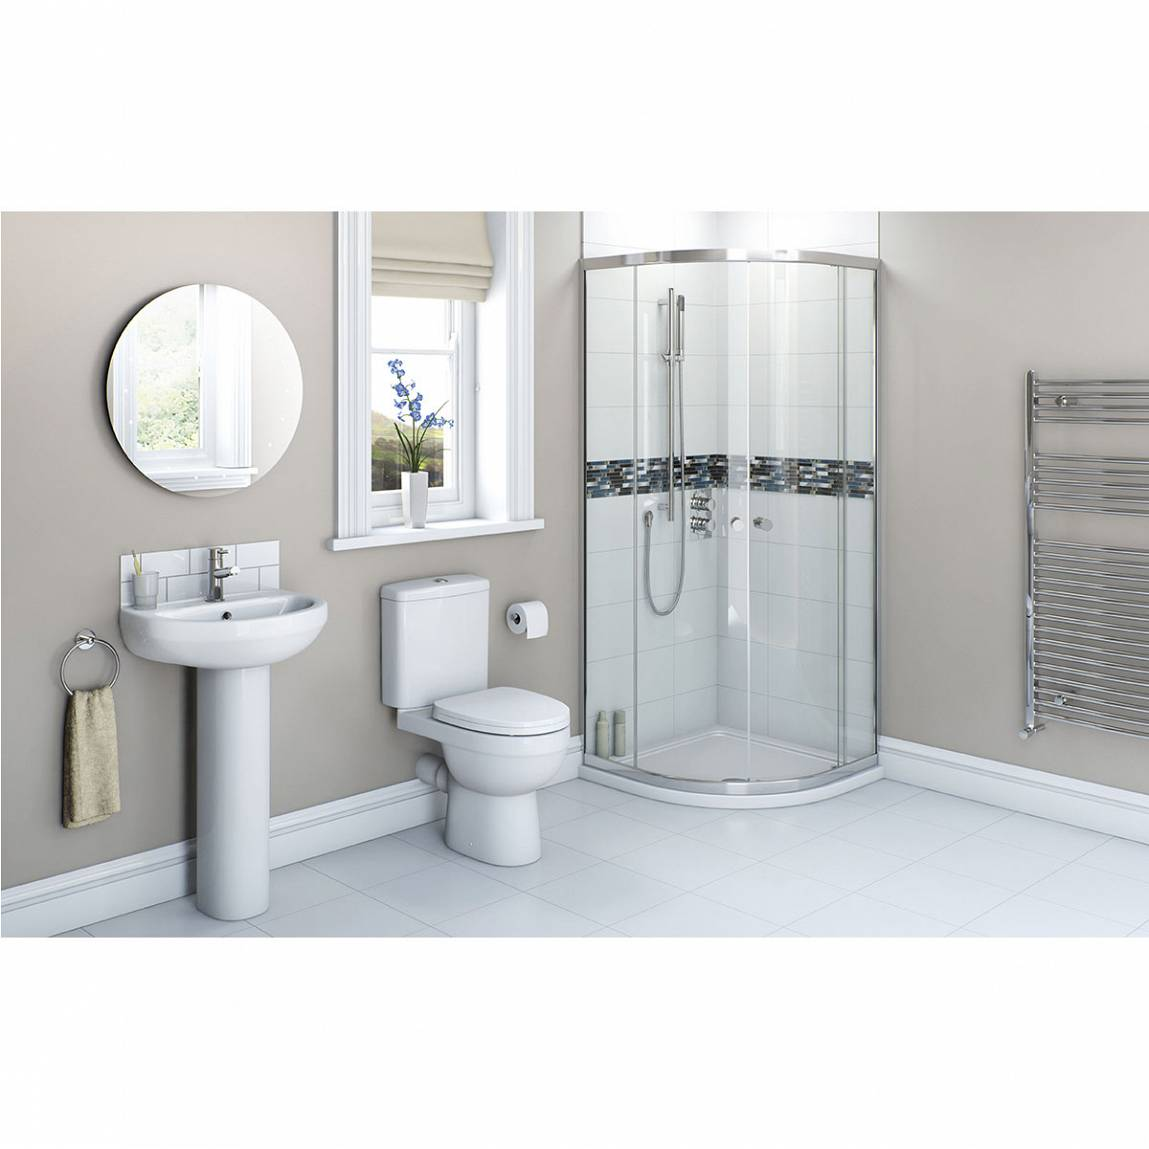 Image of Energy Bathroom Suite with Quadrant Enclosure 800